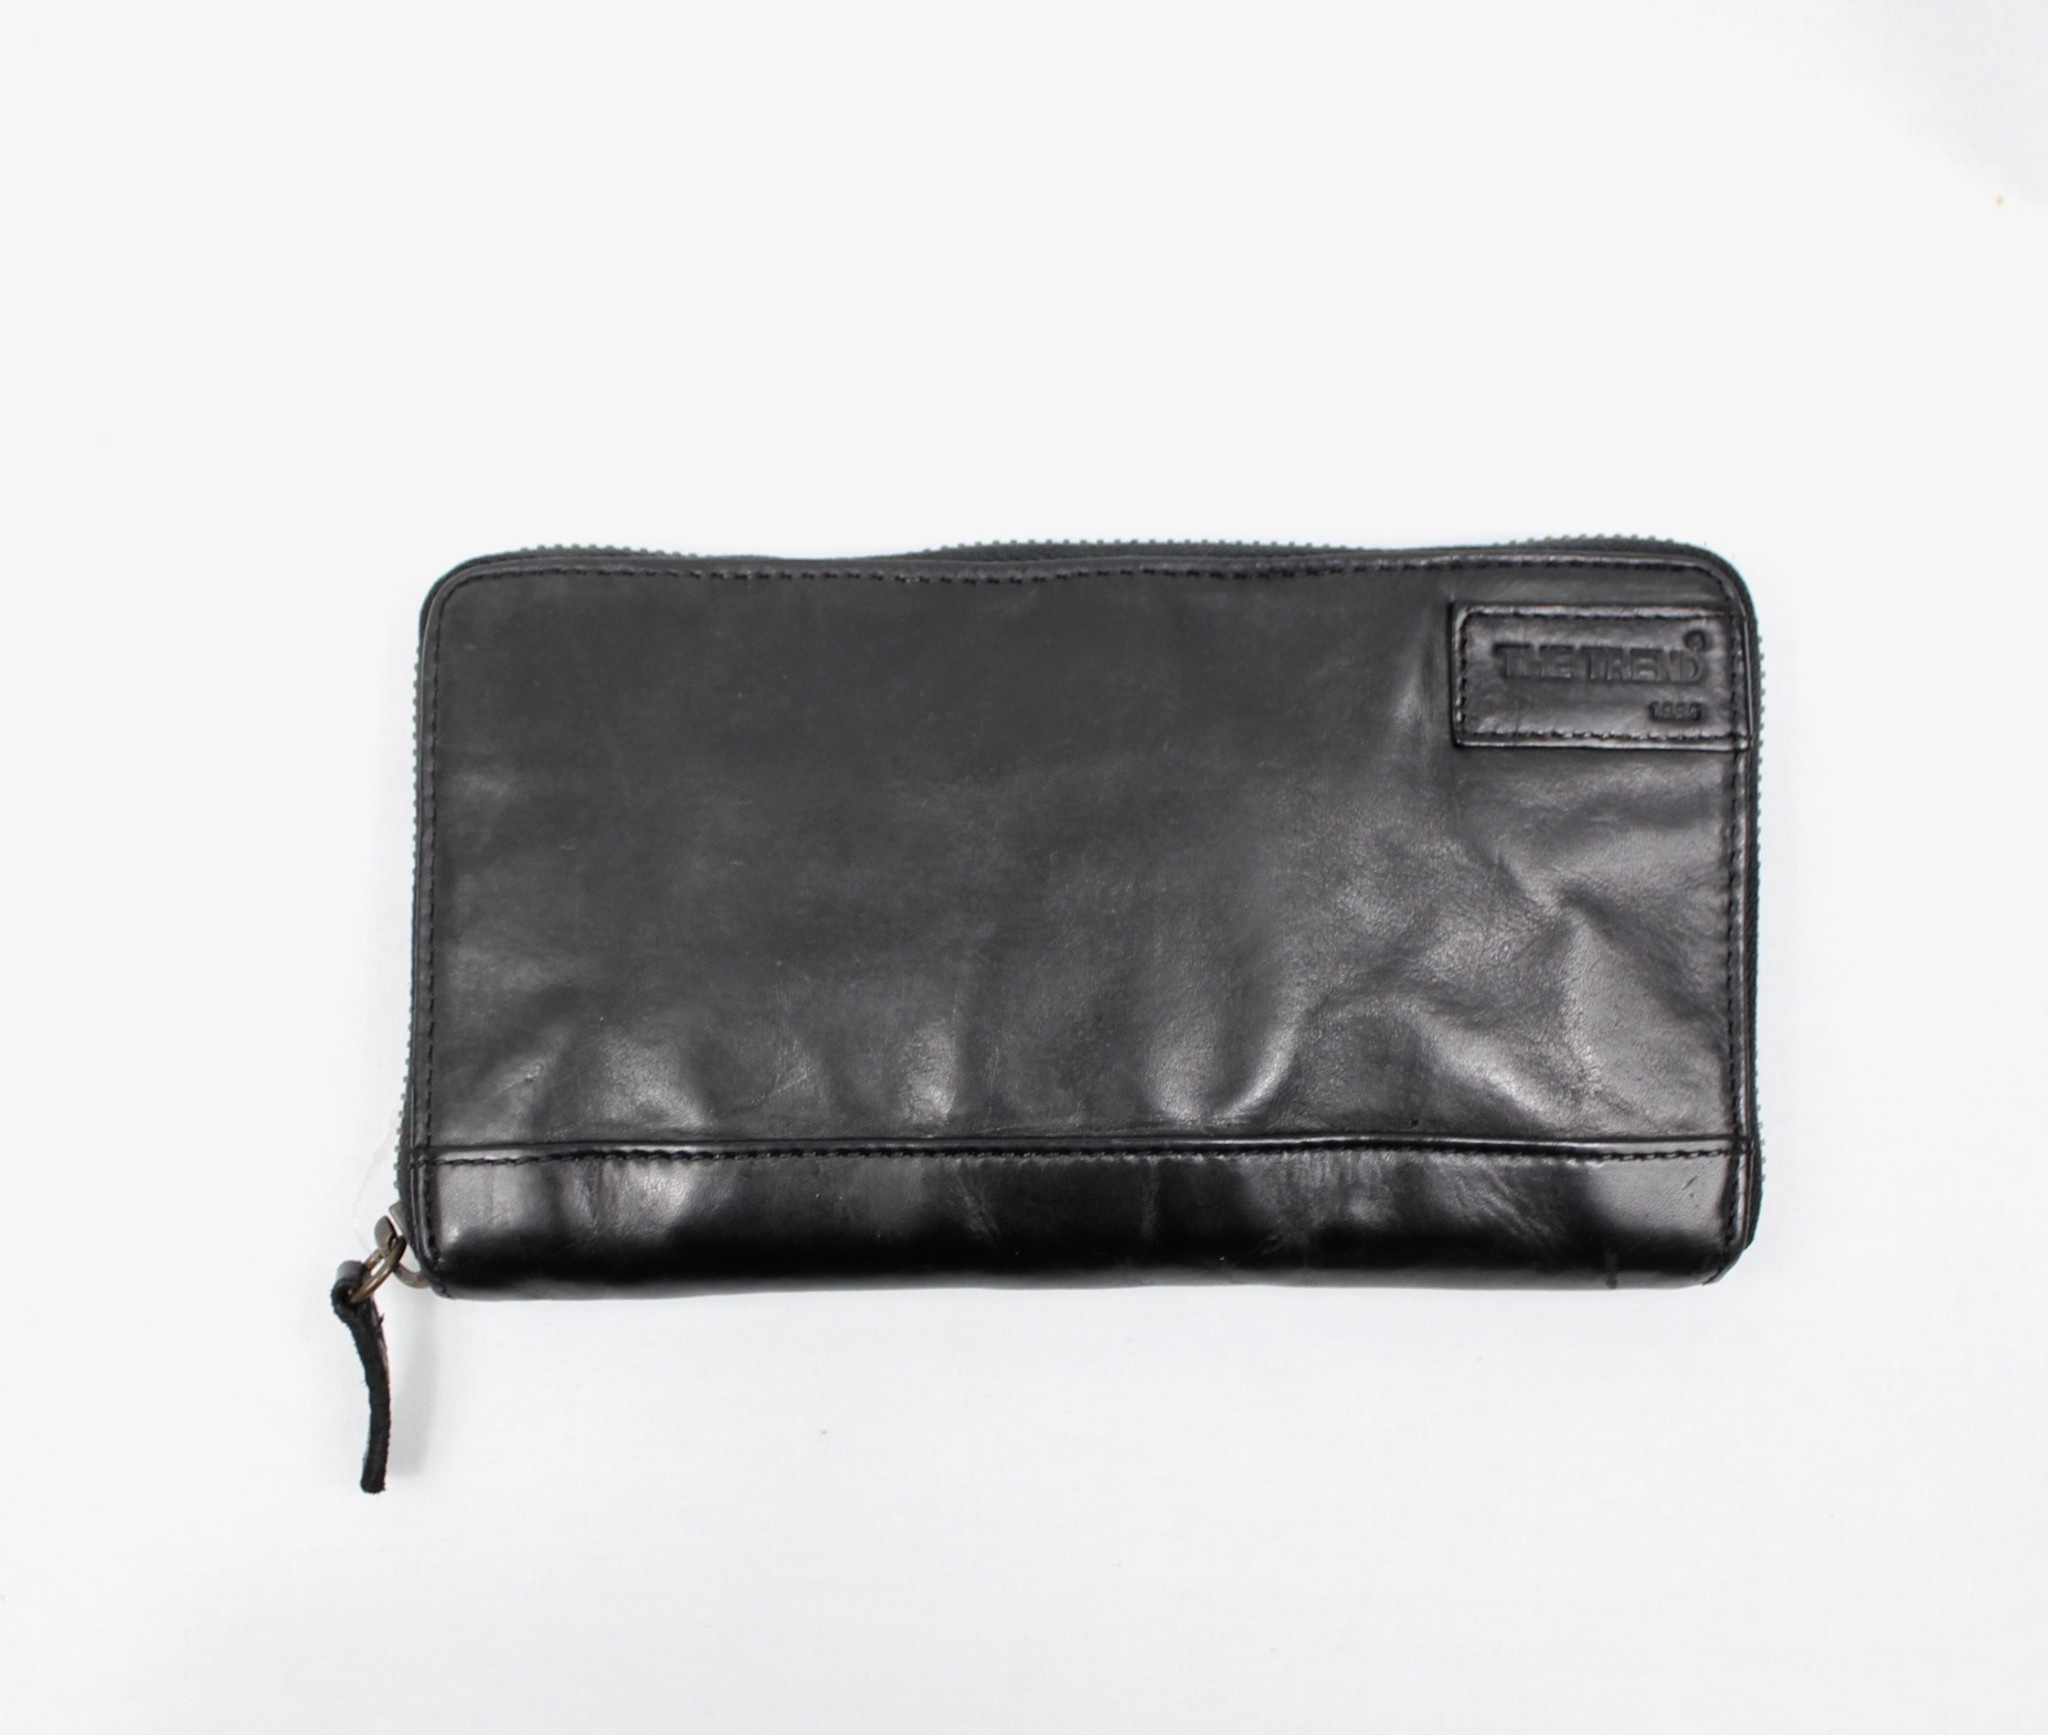 THE TREND THE TREND 4208106 Black Leather Wallet